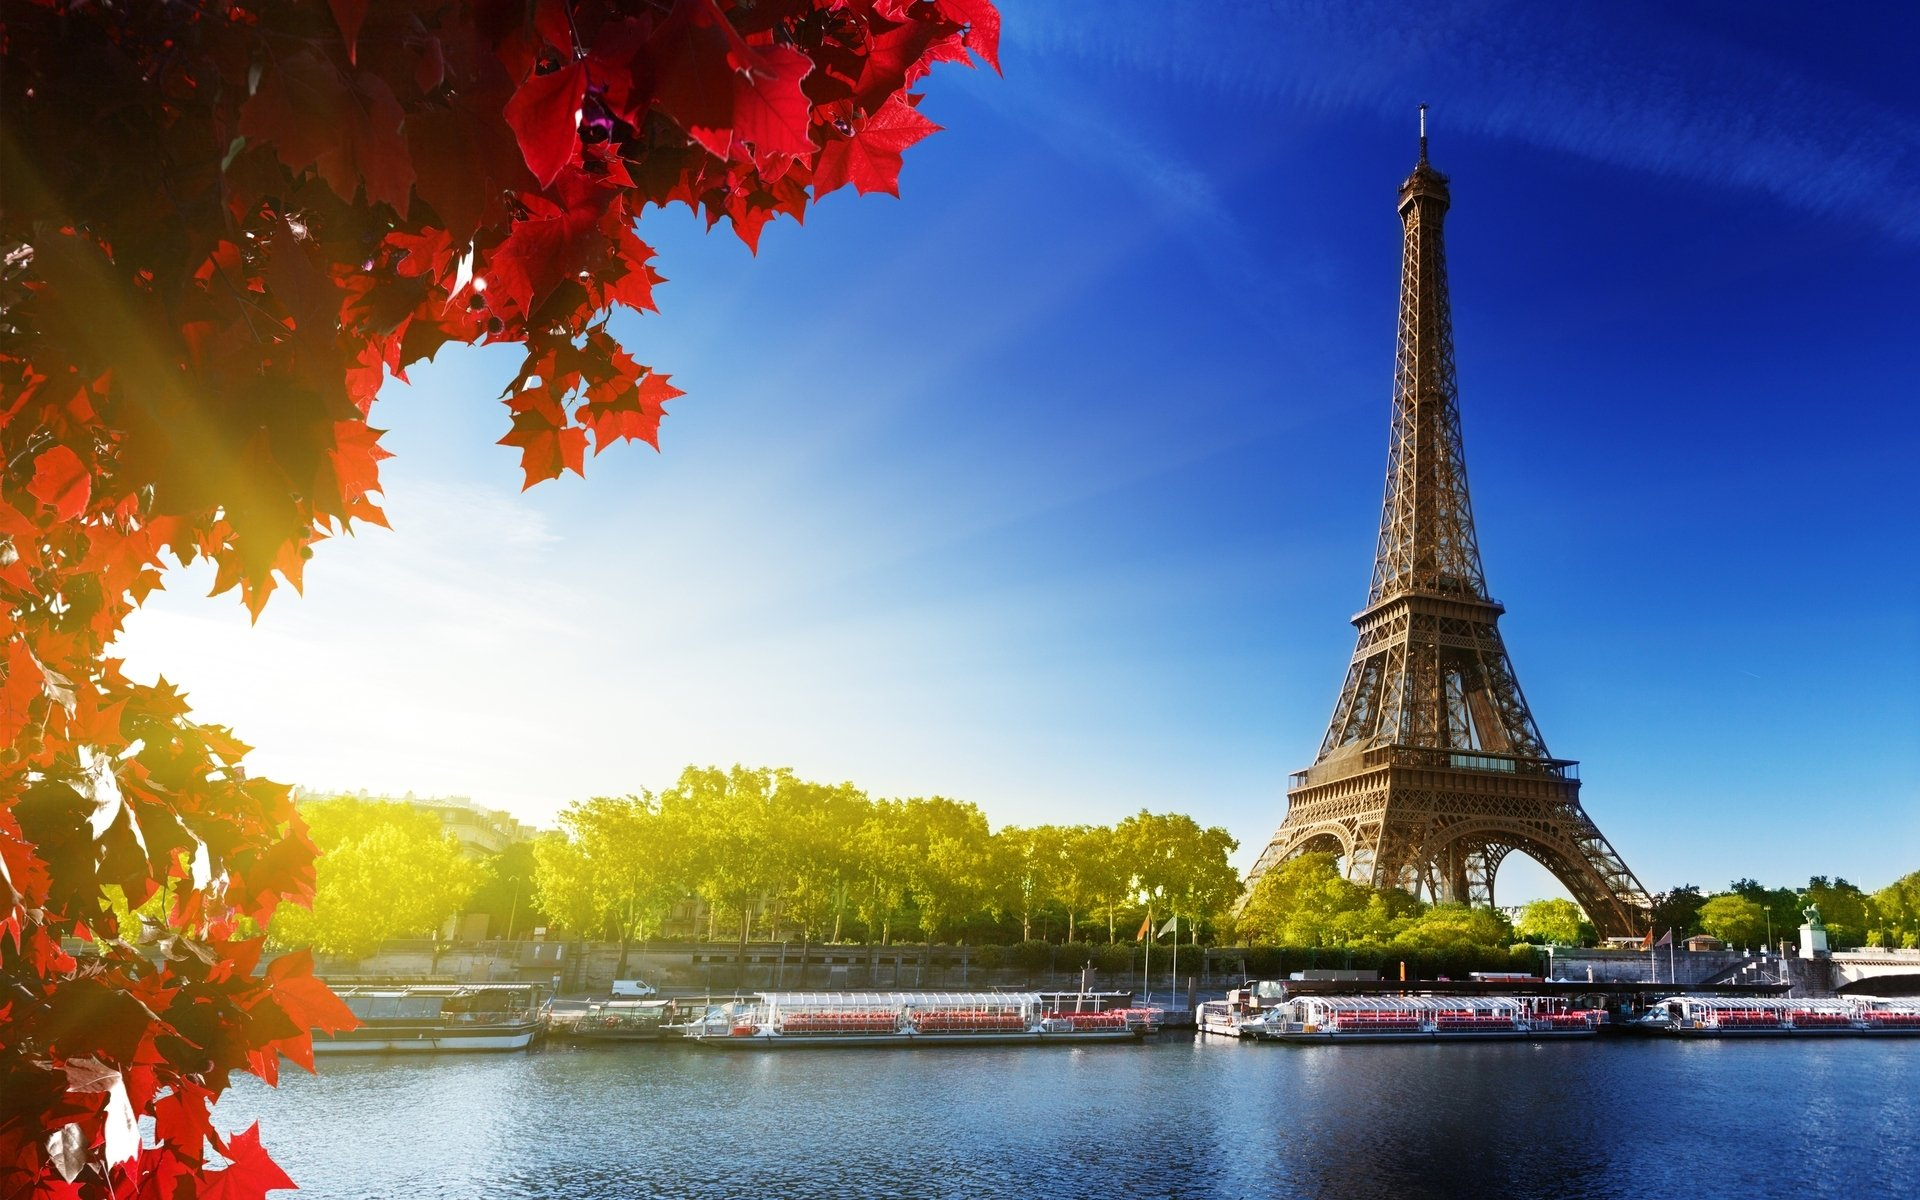 250 Eiffel Tower Hd Wallpapers Background Images Wallpaper Abyss